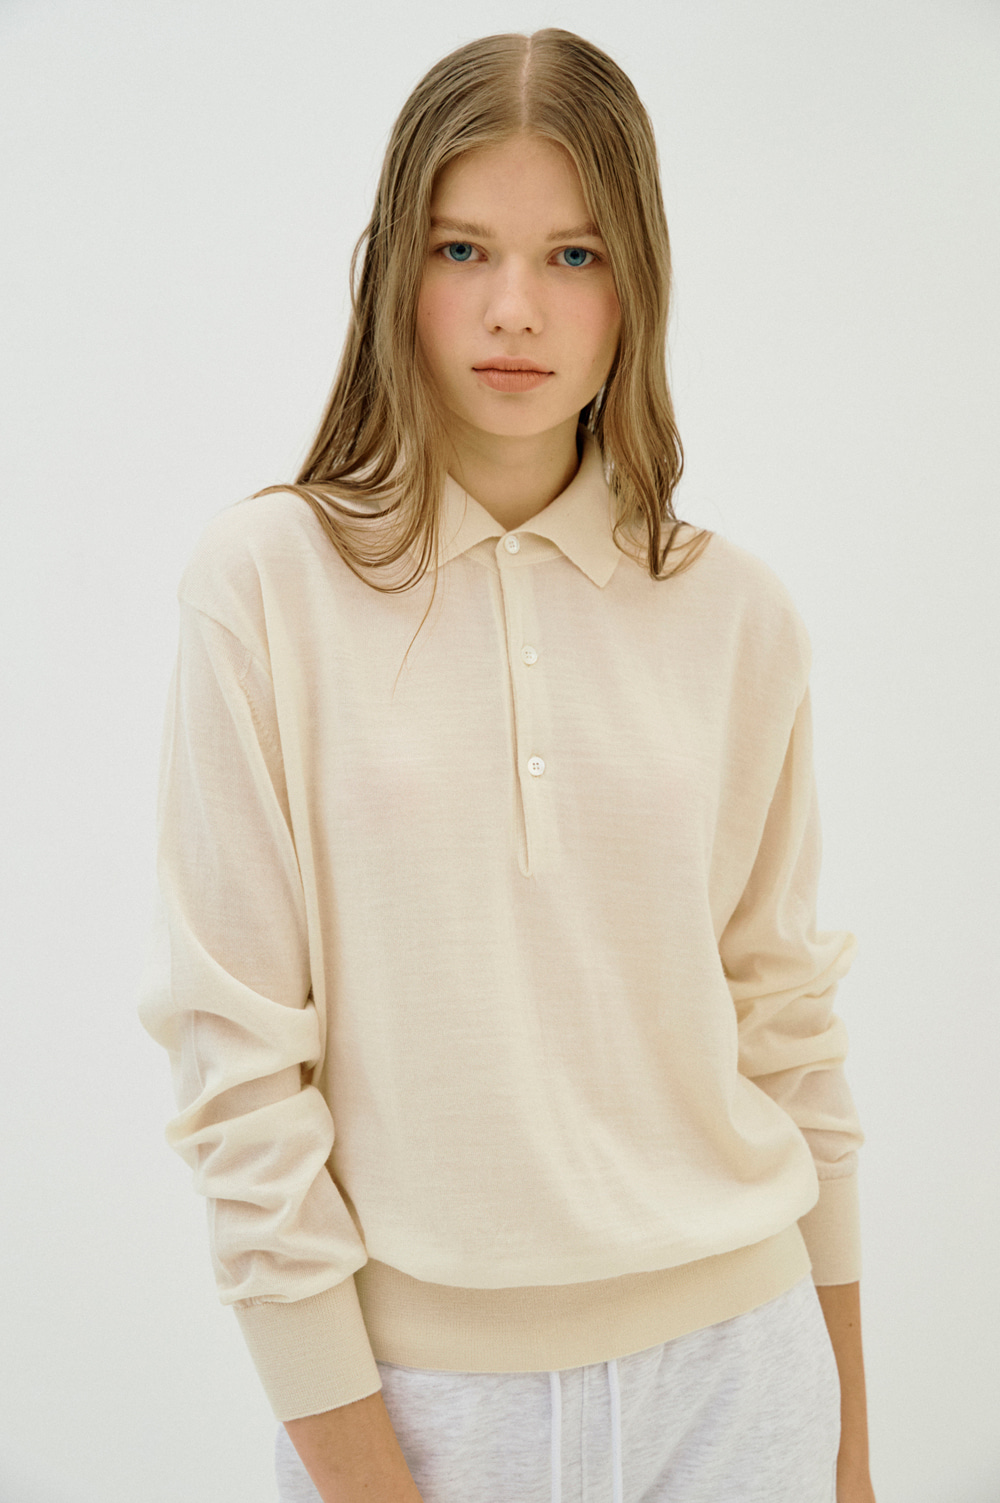 Extrafine Wool Polo _Women (Cream)